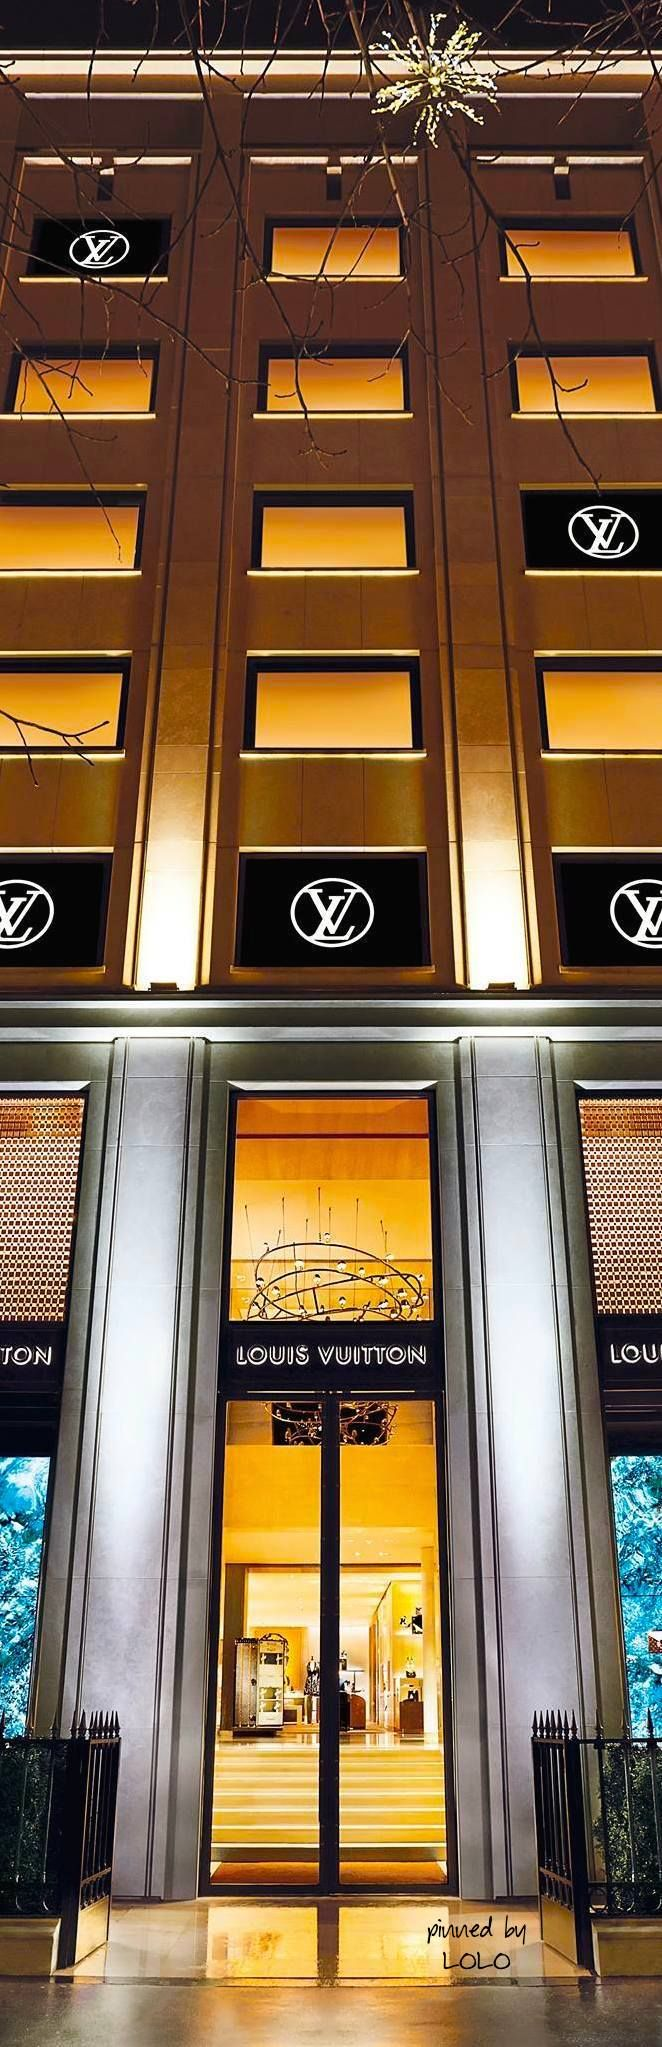 "Louis Vuitton Paris on the Avenue des Champs-Élysées is six floors of heavenly shopping. Just remember to look for the ""Red Scarf"" to assist you."